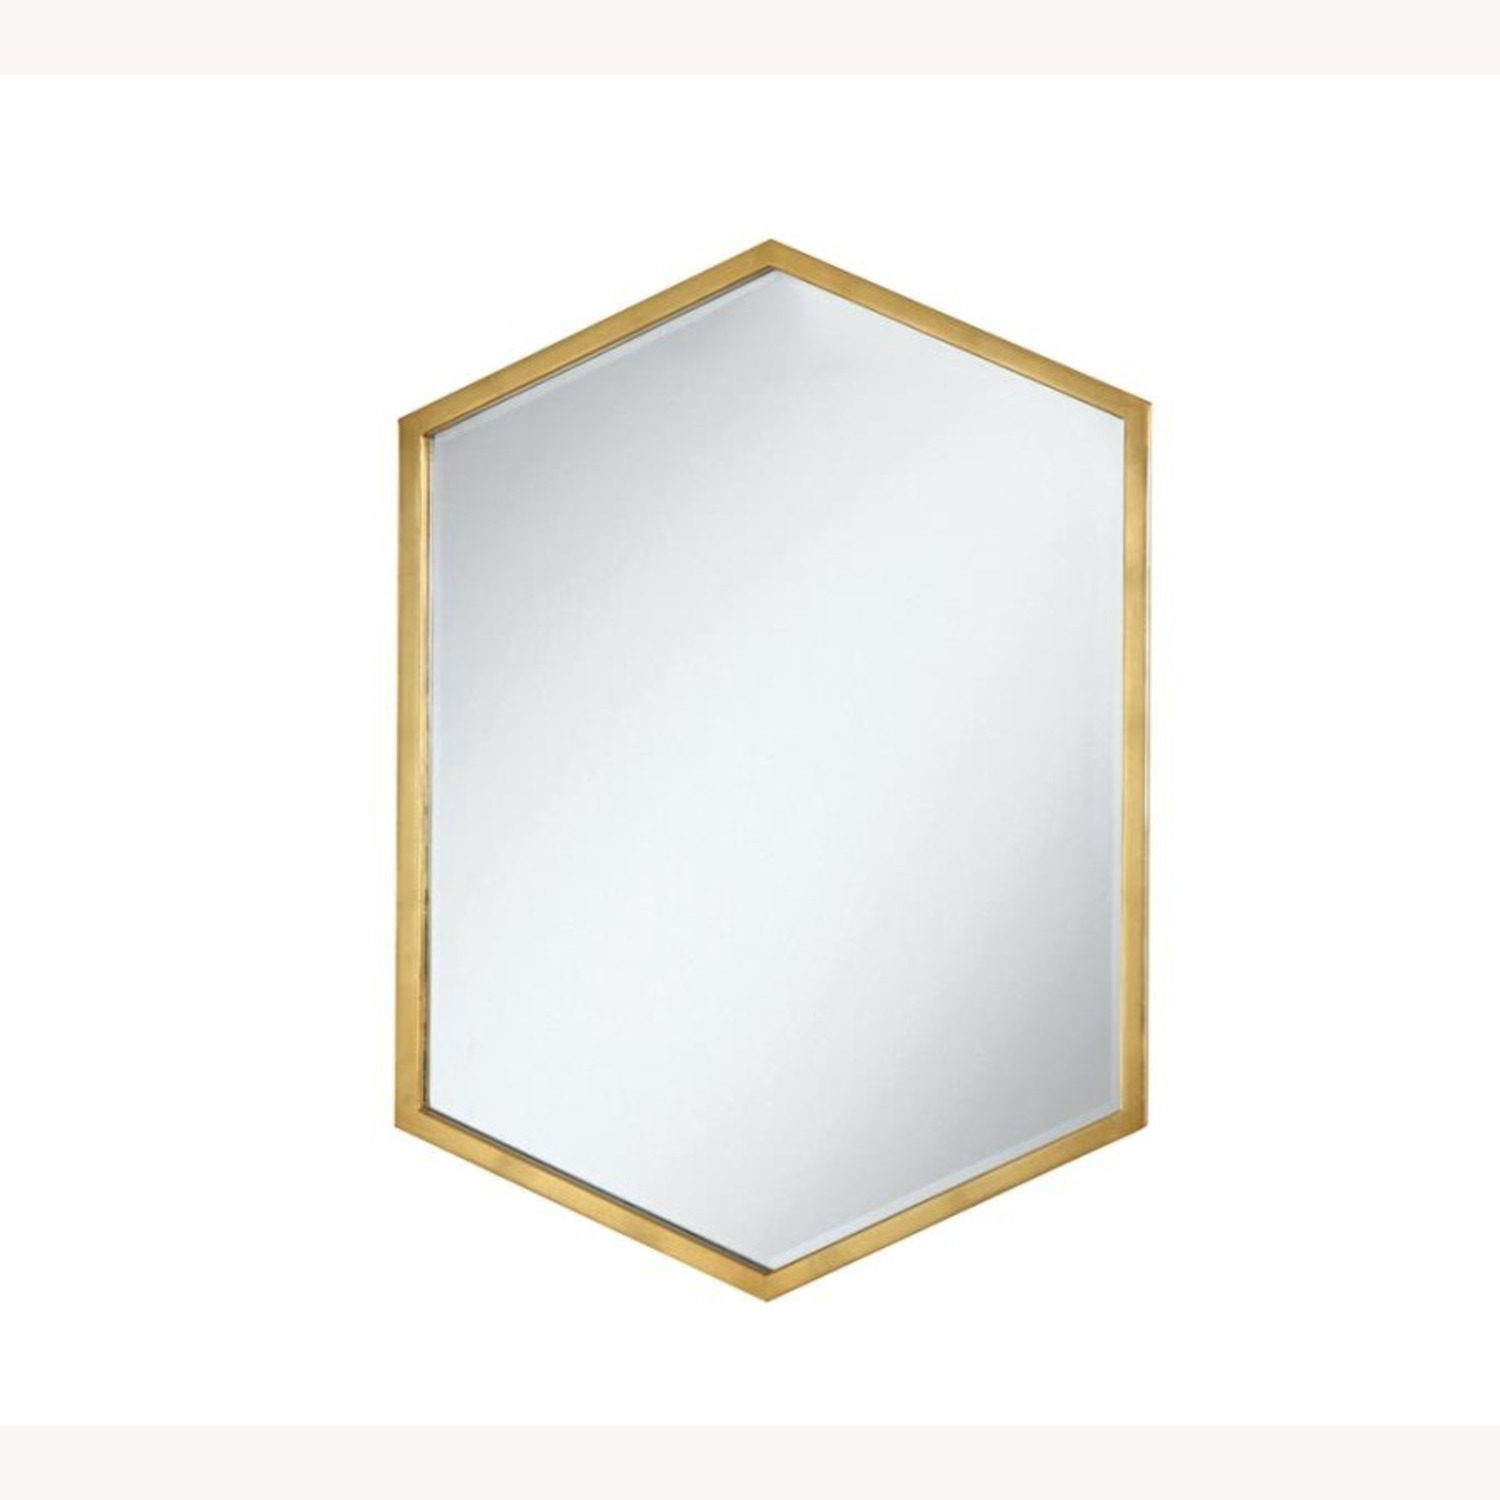 Mirror In Matte Gold Hexagon-Shaped Frame Finish - image-2